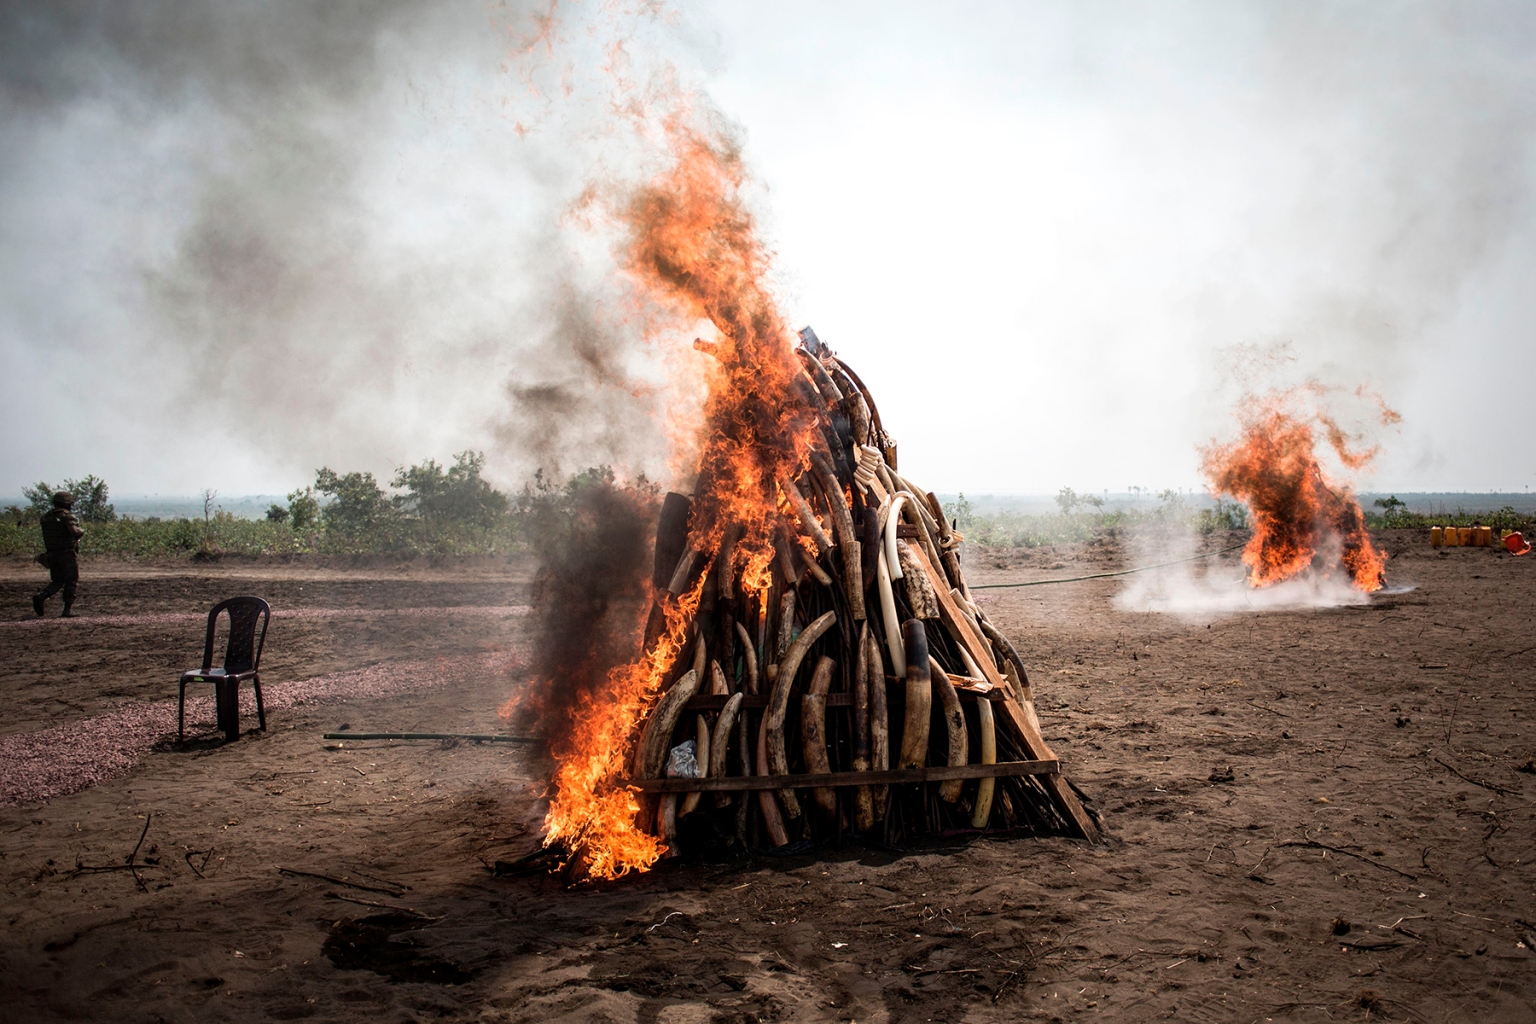 Two piles of ivory burn during a ceremony attended by Joseph Kabila, president of the Democratic Republic of the Congo, who ignited 1 ton of ivory and pangolin scales to draw attention to the problem of poaching in Kinshasa on Sept. 30. JOHN WESSELS/AFP/Getty Images